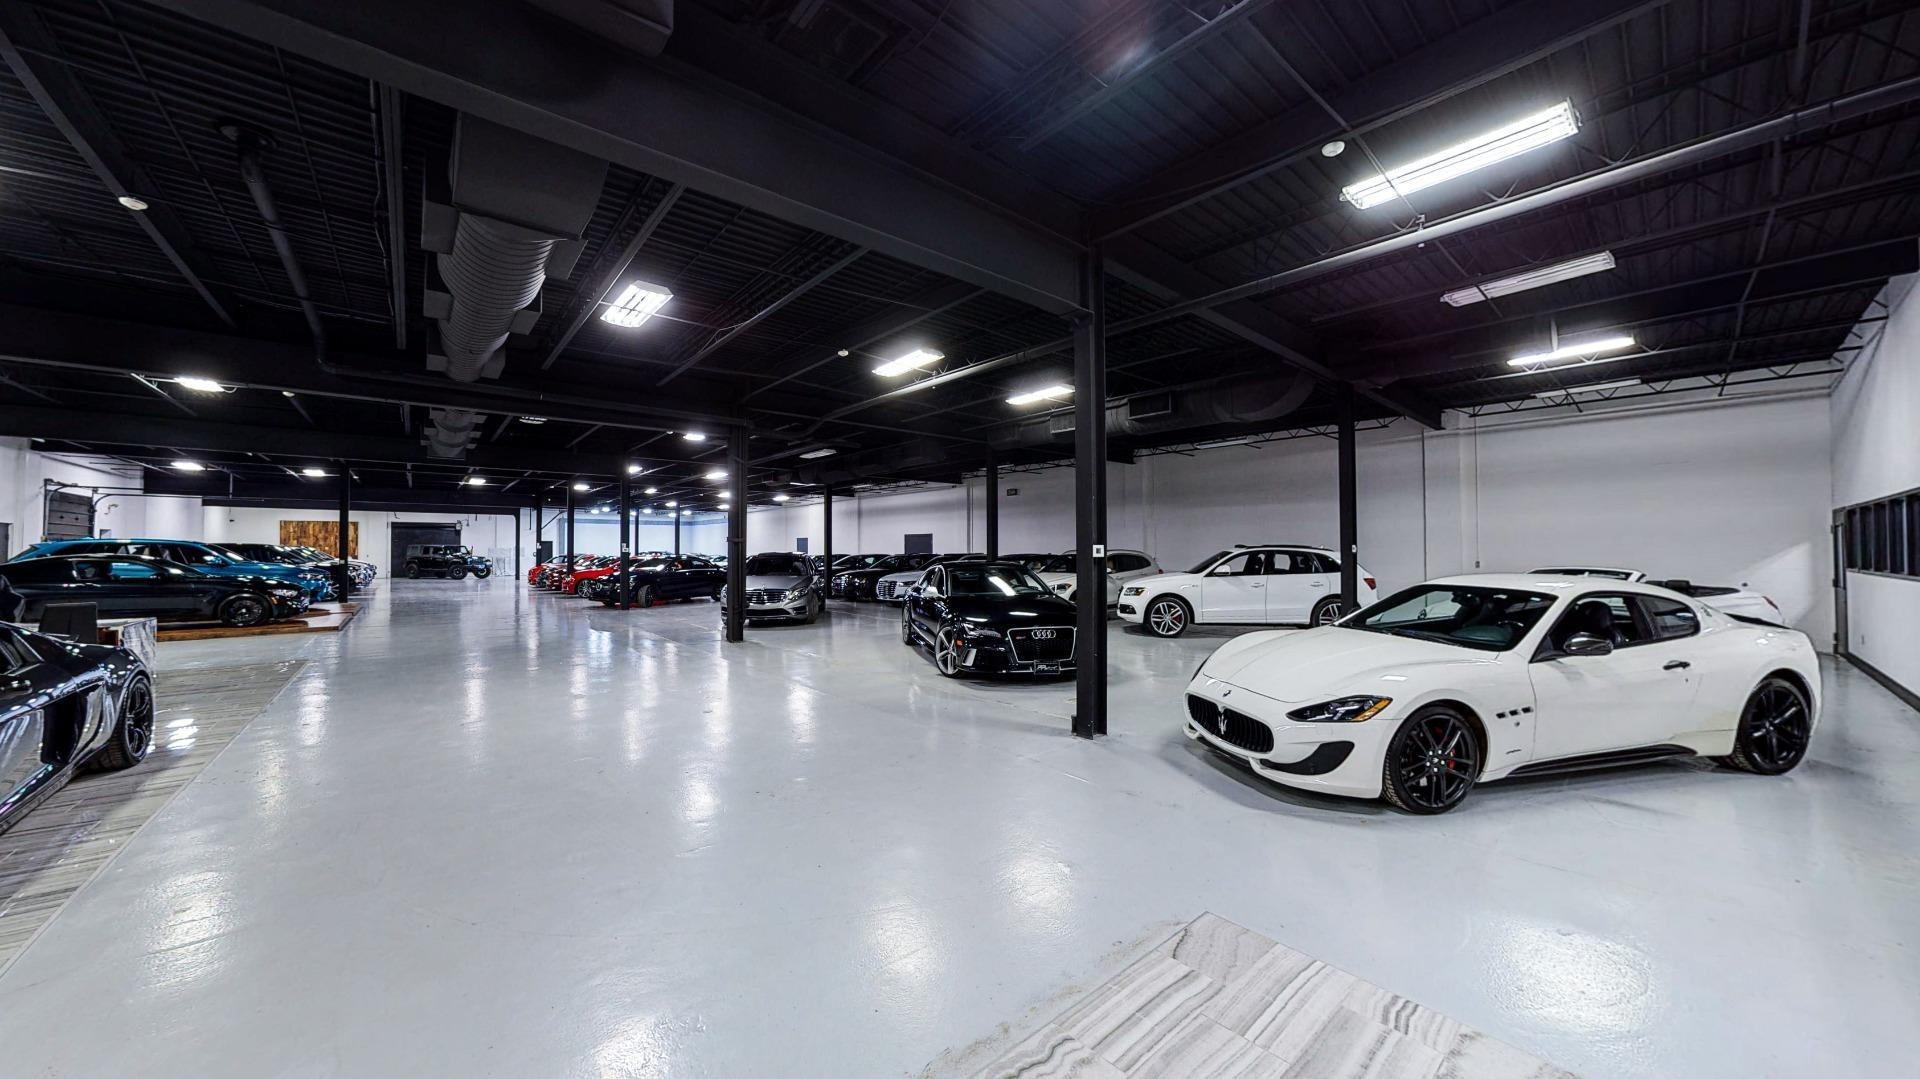 Used 2013 Maserati GranTurismo MC Package for sale Sold at Perfect Auto Collection in Akron OH 44310 2